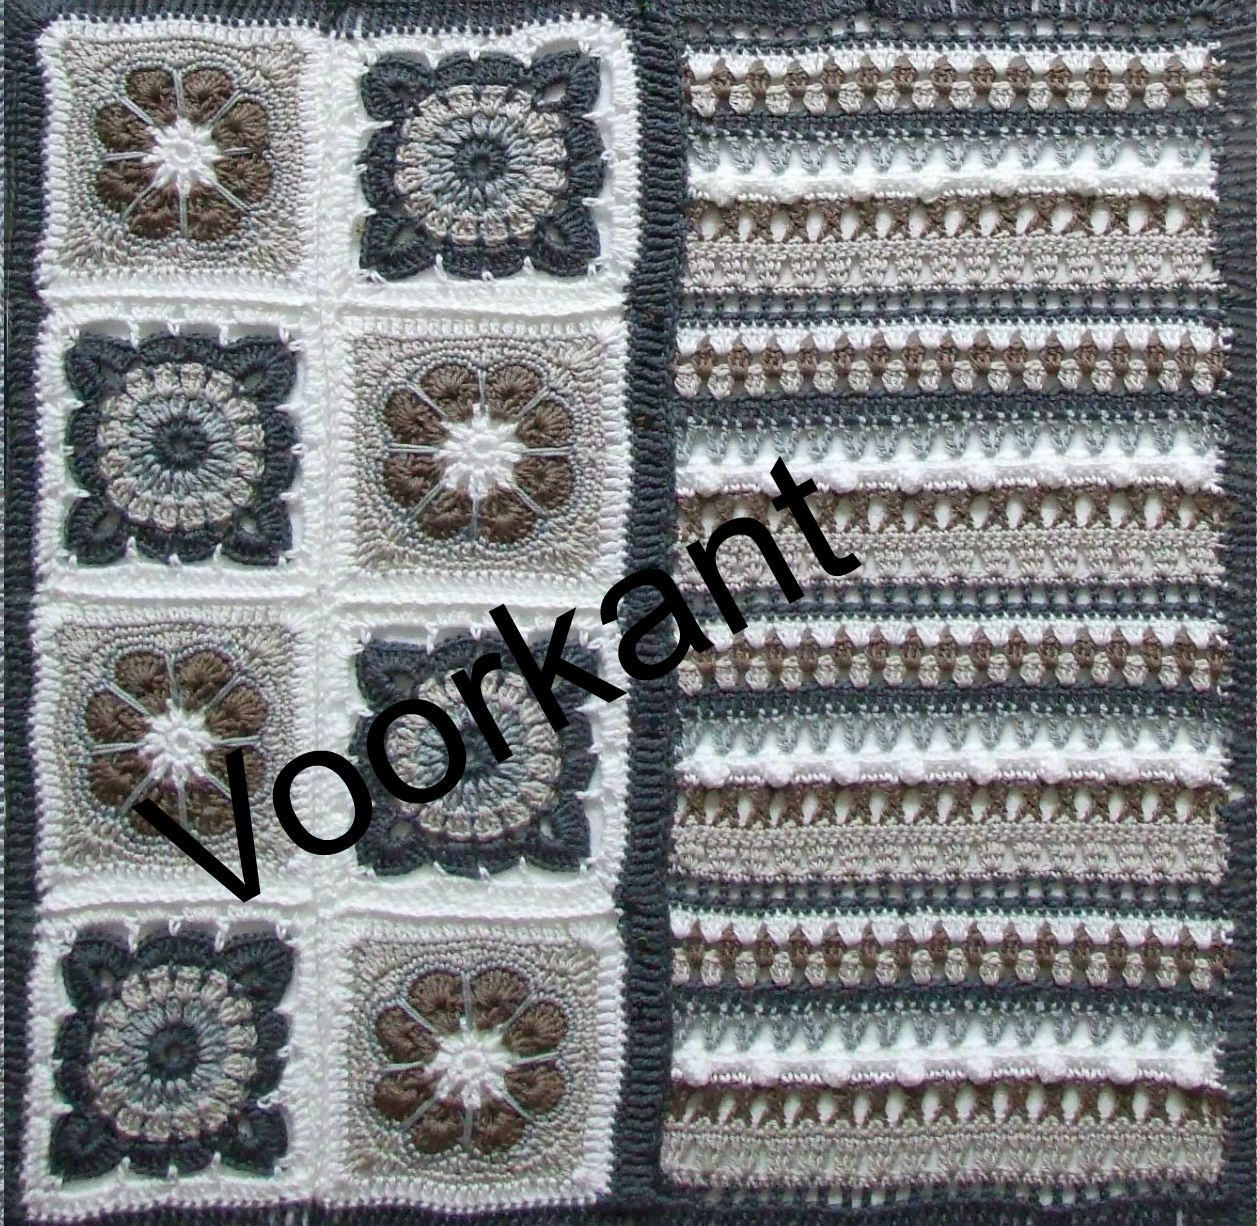 Especial And More Haken Gehaakte Kussenhoes Granny Squares And